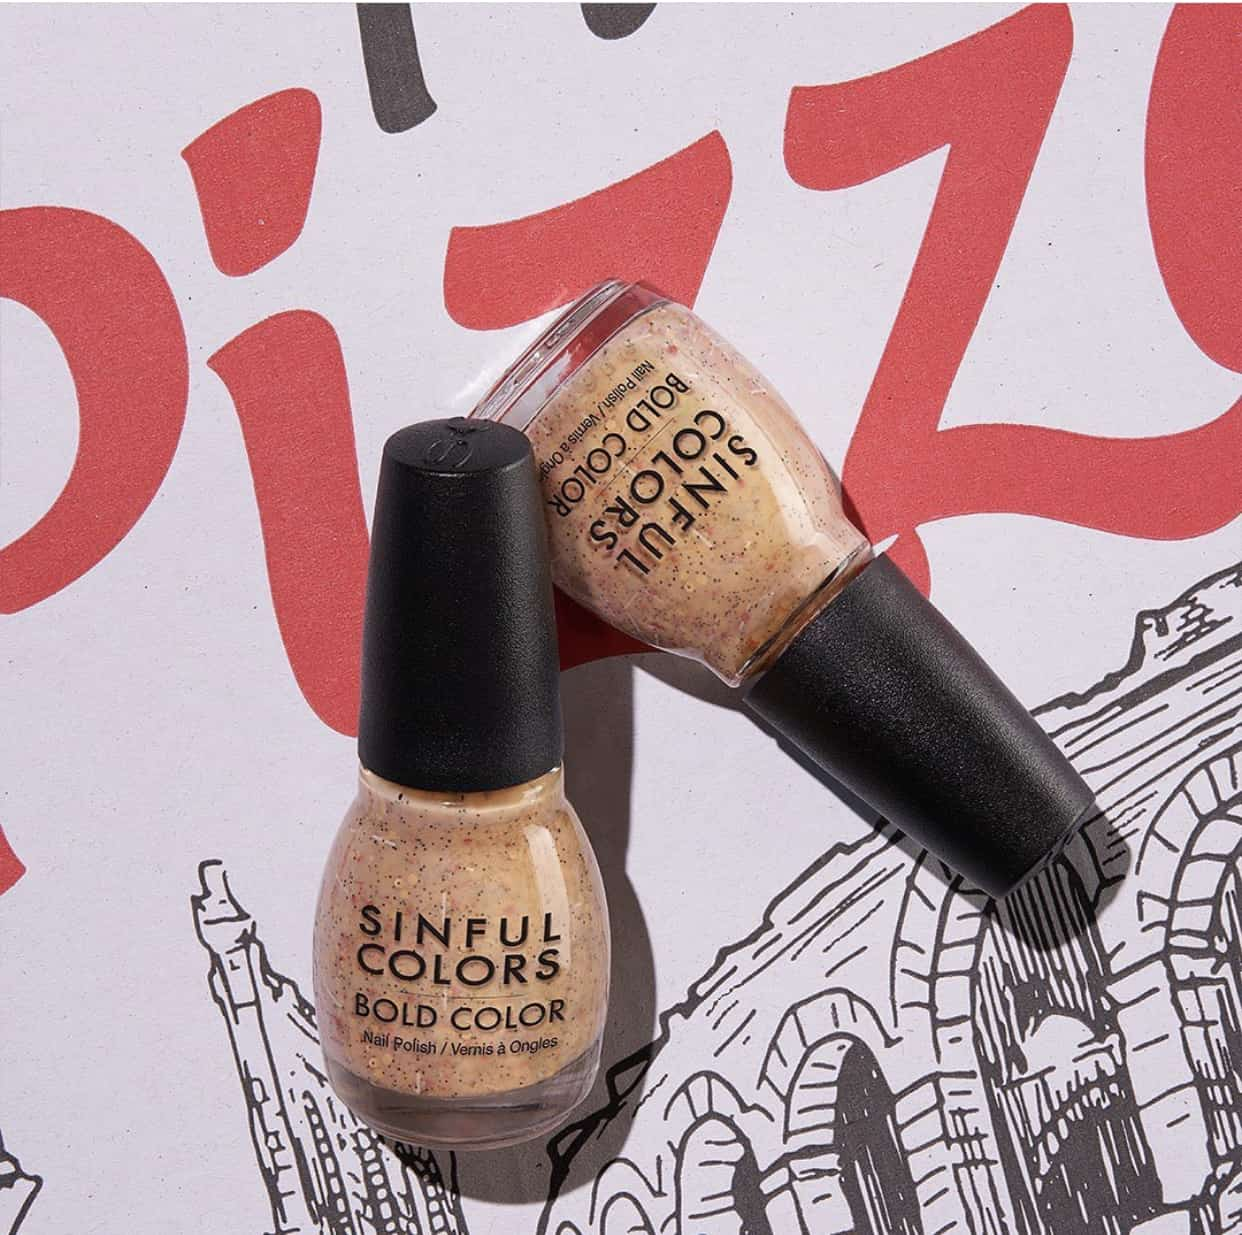 Sinful Colors Sweet and Salty Nail Polish Collection